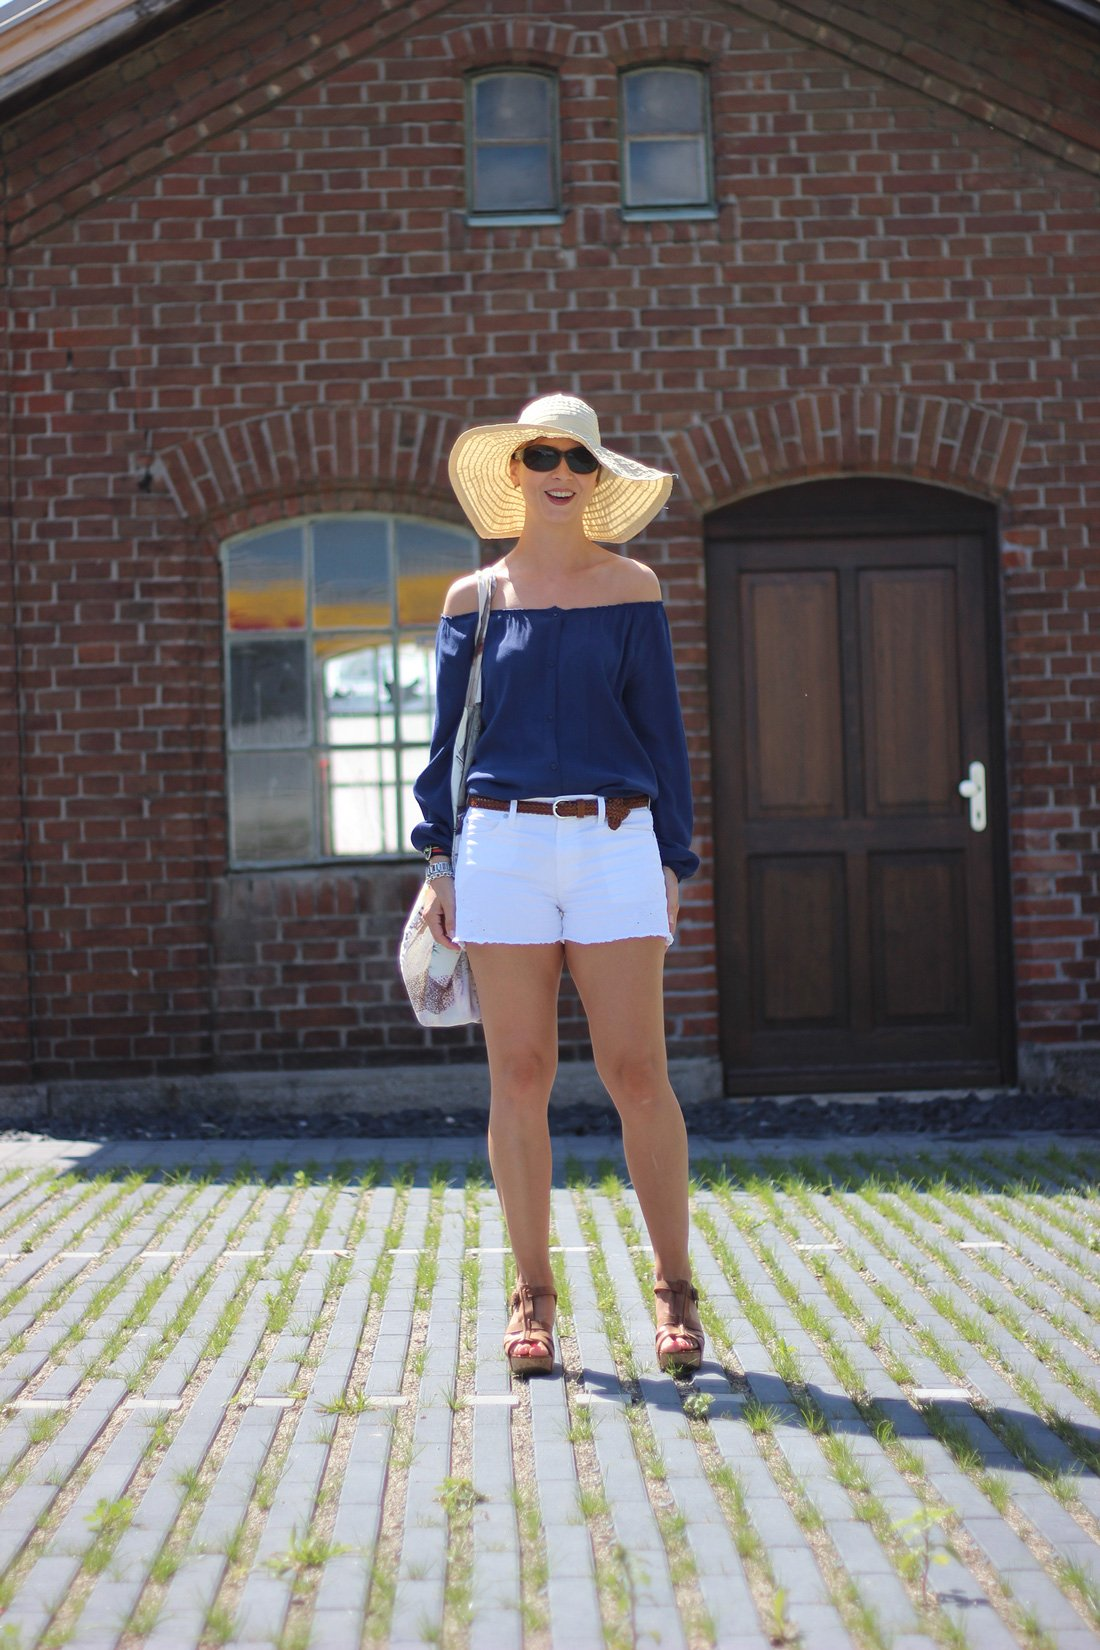 Interview bei Cla, offshoulder Bluse, blau, weiß, shorts, gap, american vintage, paul green, sandalen, sonnehut, sommerlook